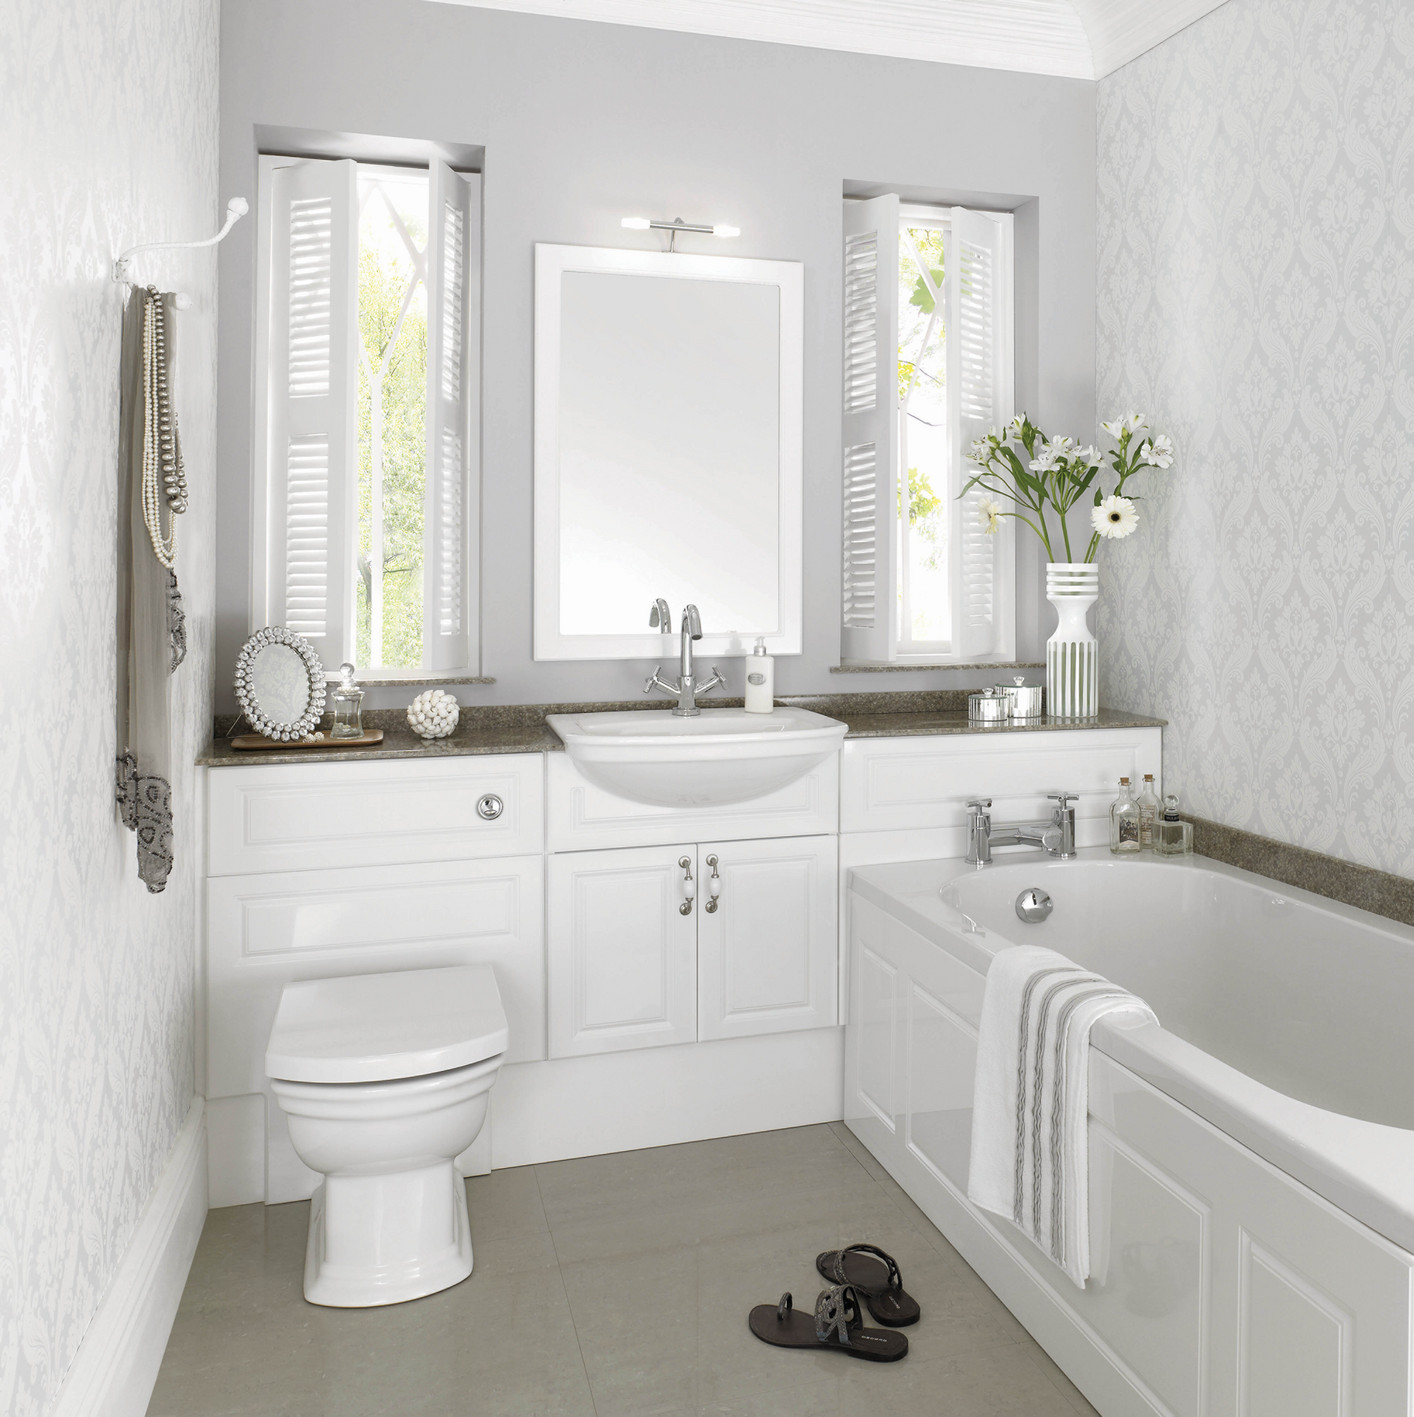 Fitted bathroom furniture designers in lincolnshire for Luxury bathroom ideas uk